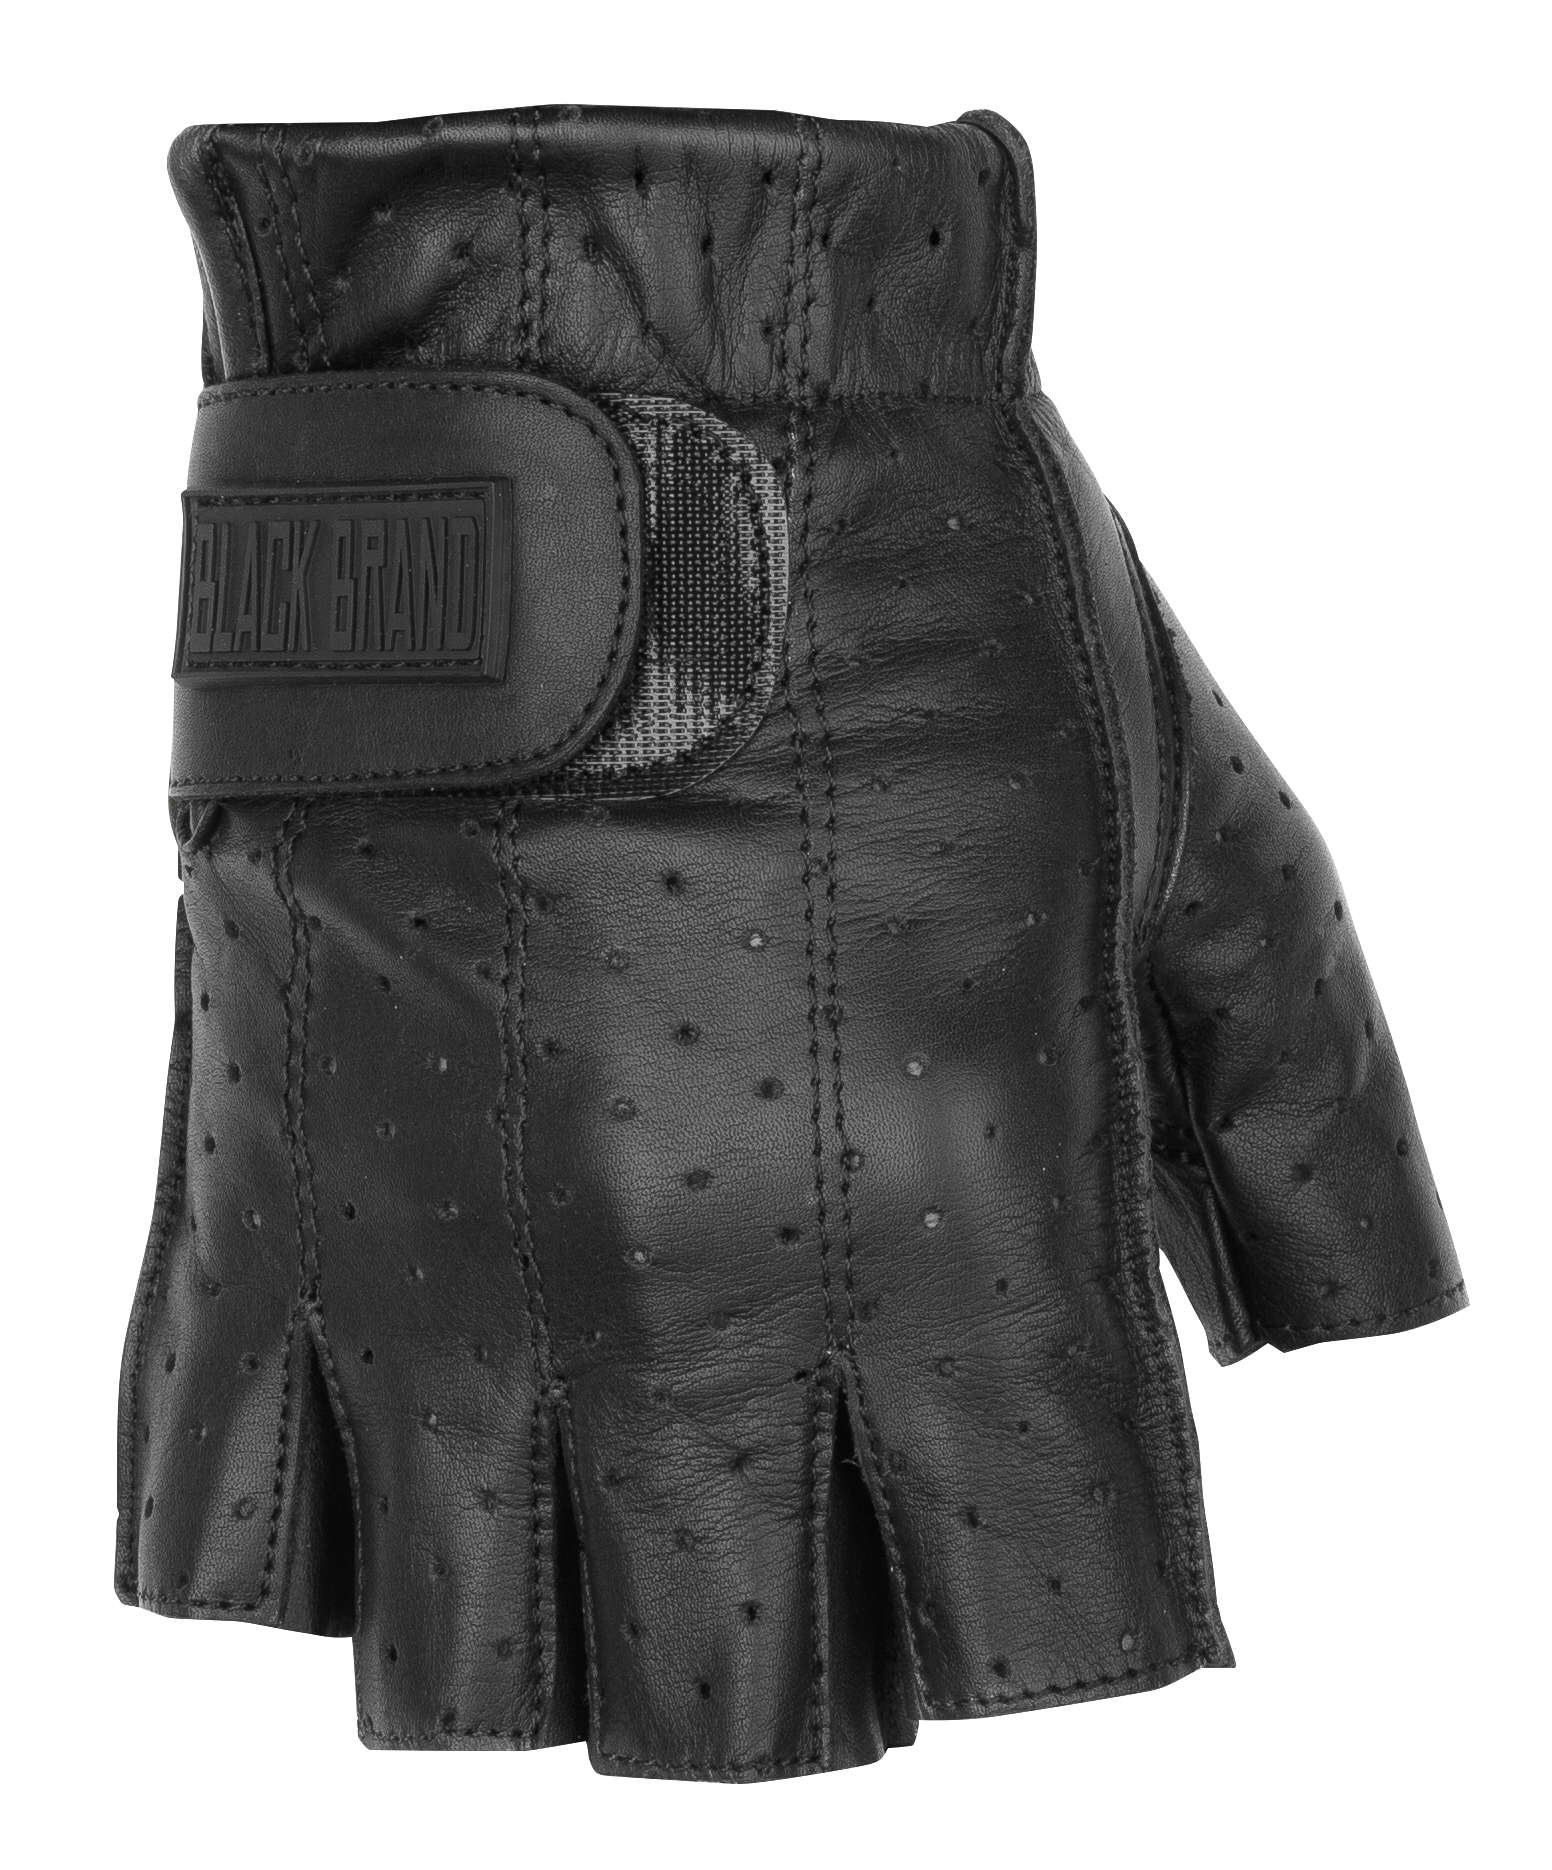 Black Brand Men's Leather Classic Shorty Motorcycle Gloves (Black, X-Large)